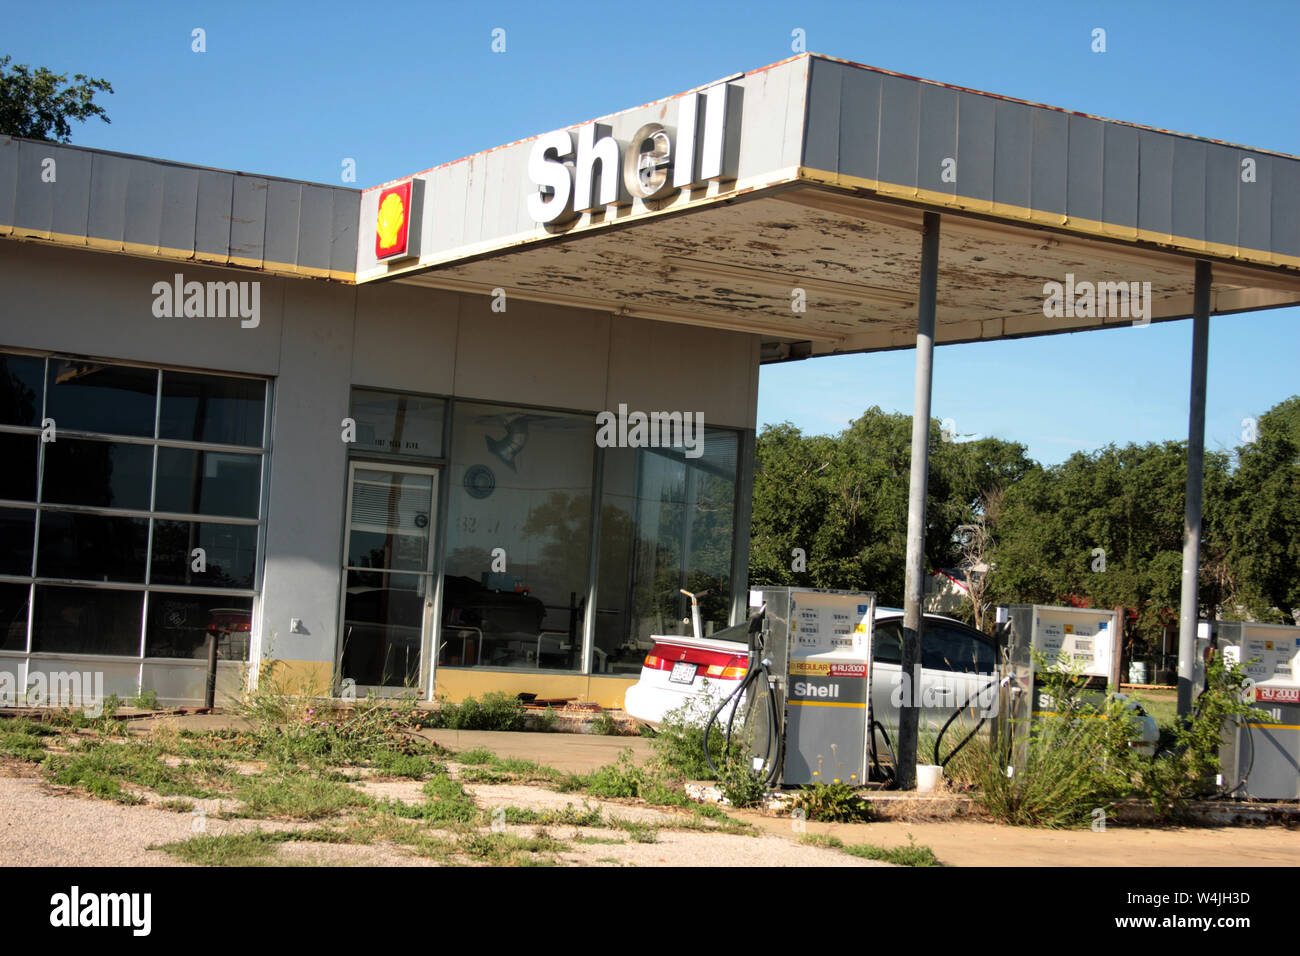 Abandoned Shell Gas Station In Texas Usa Stock Photo Alamy